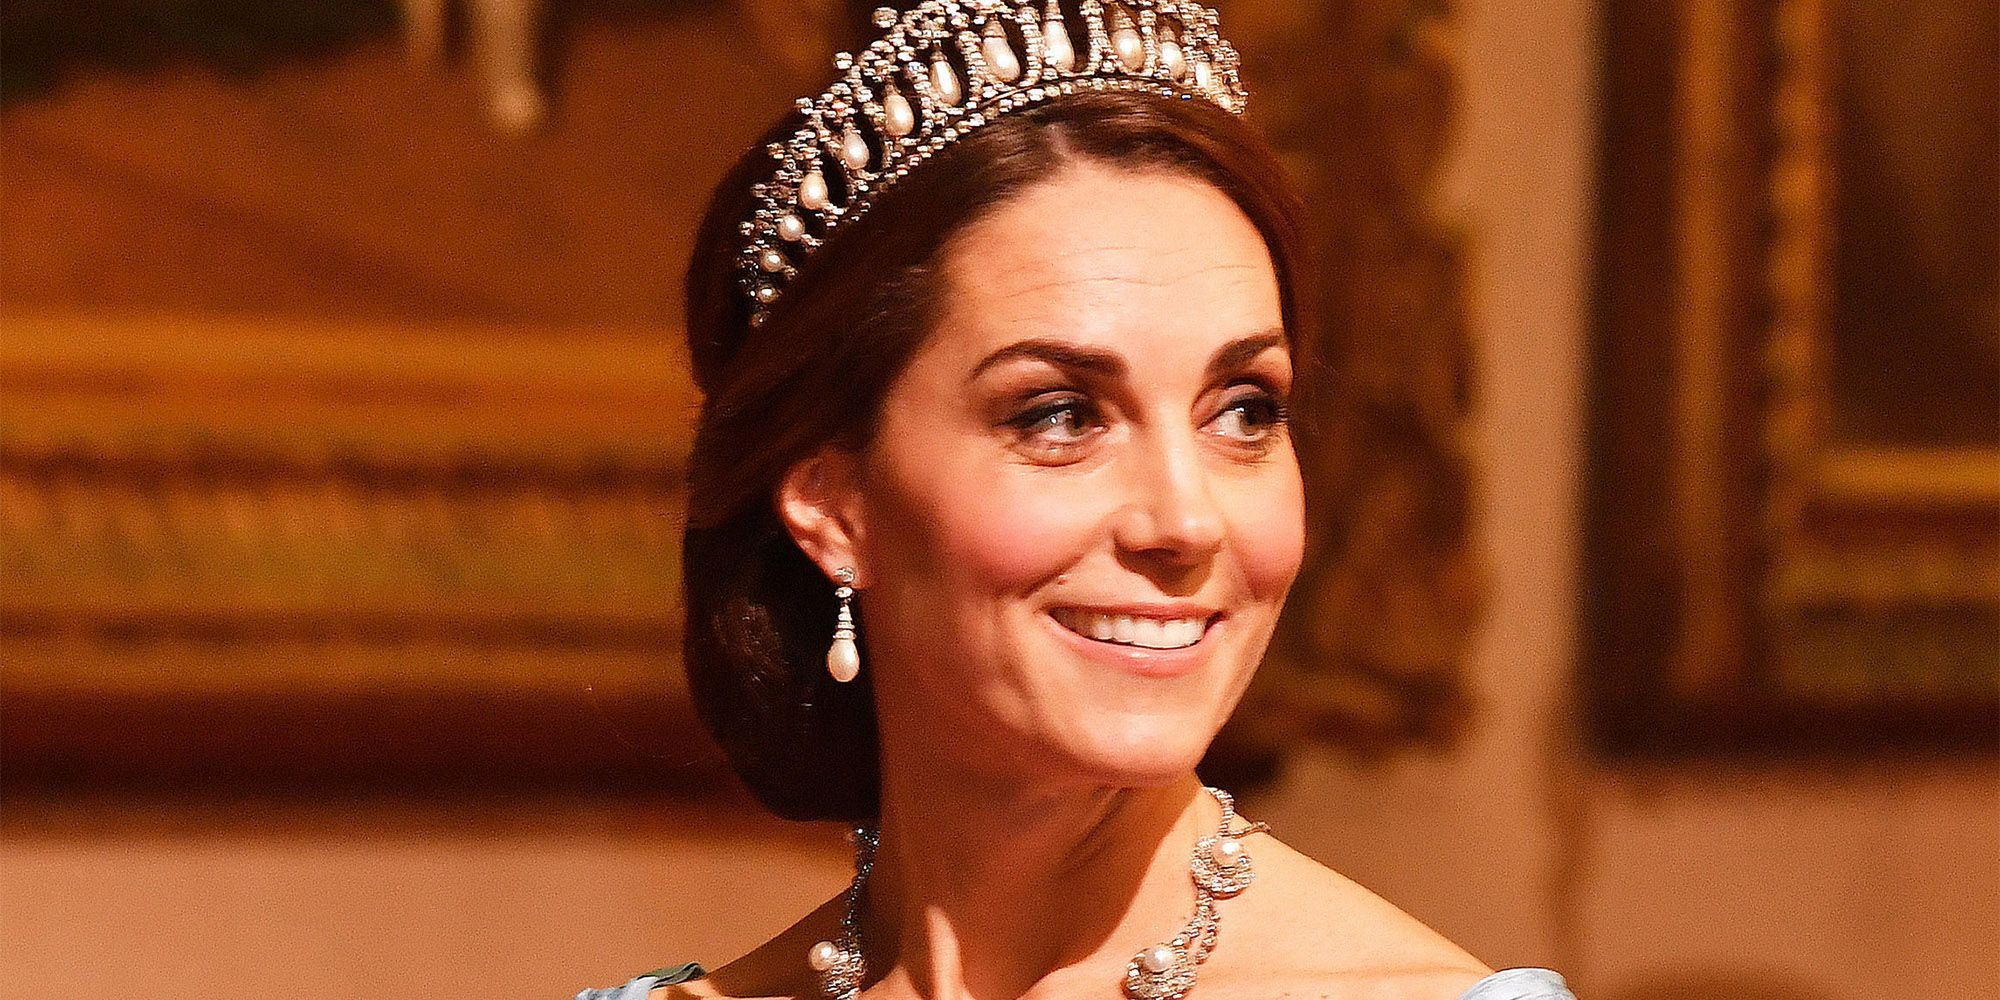 The fascinating story behind the Duchess of Cambridge's diamond and pearl necklace